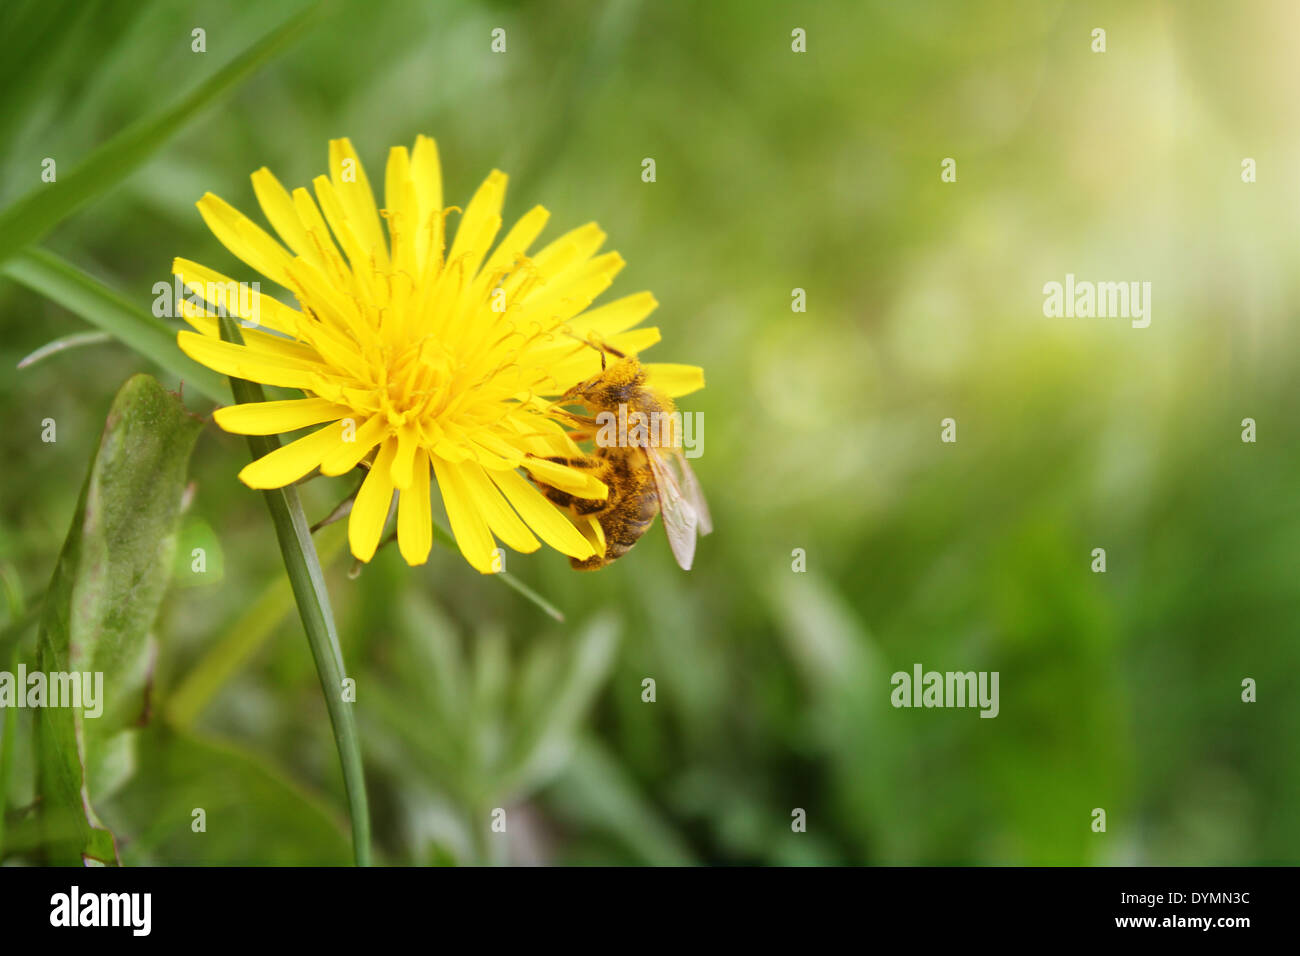 bee sip nectar from yellow flower - Stock Image